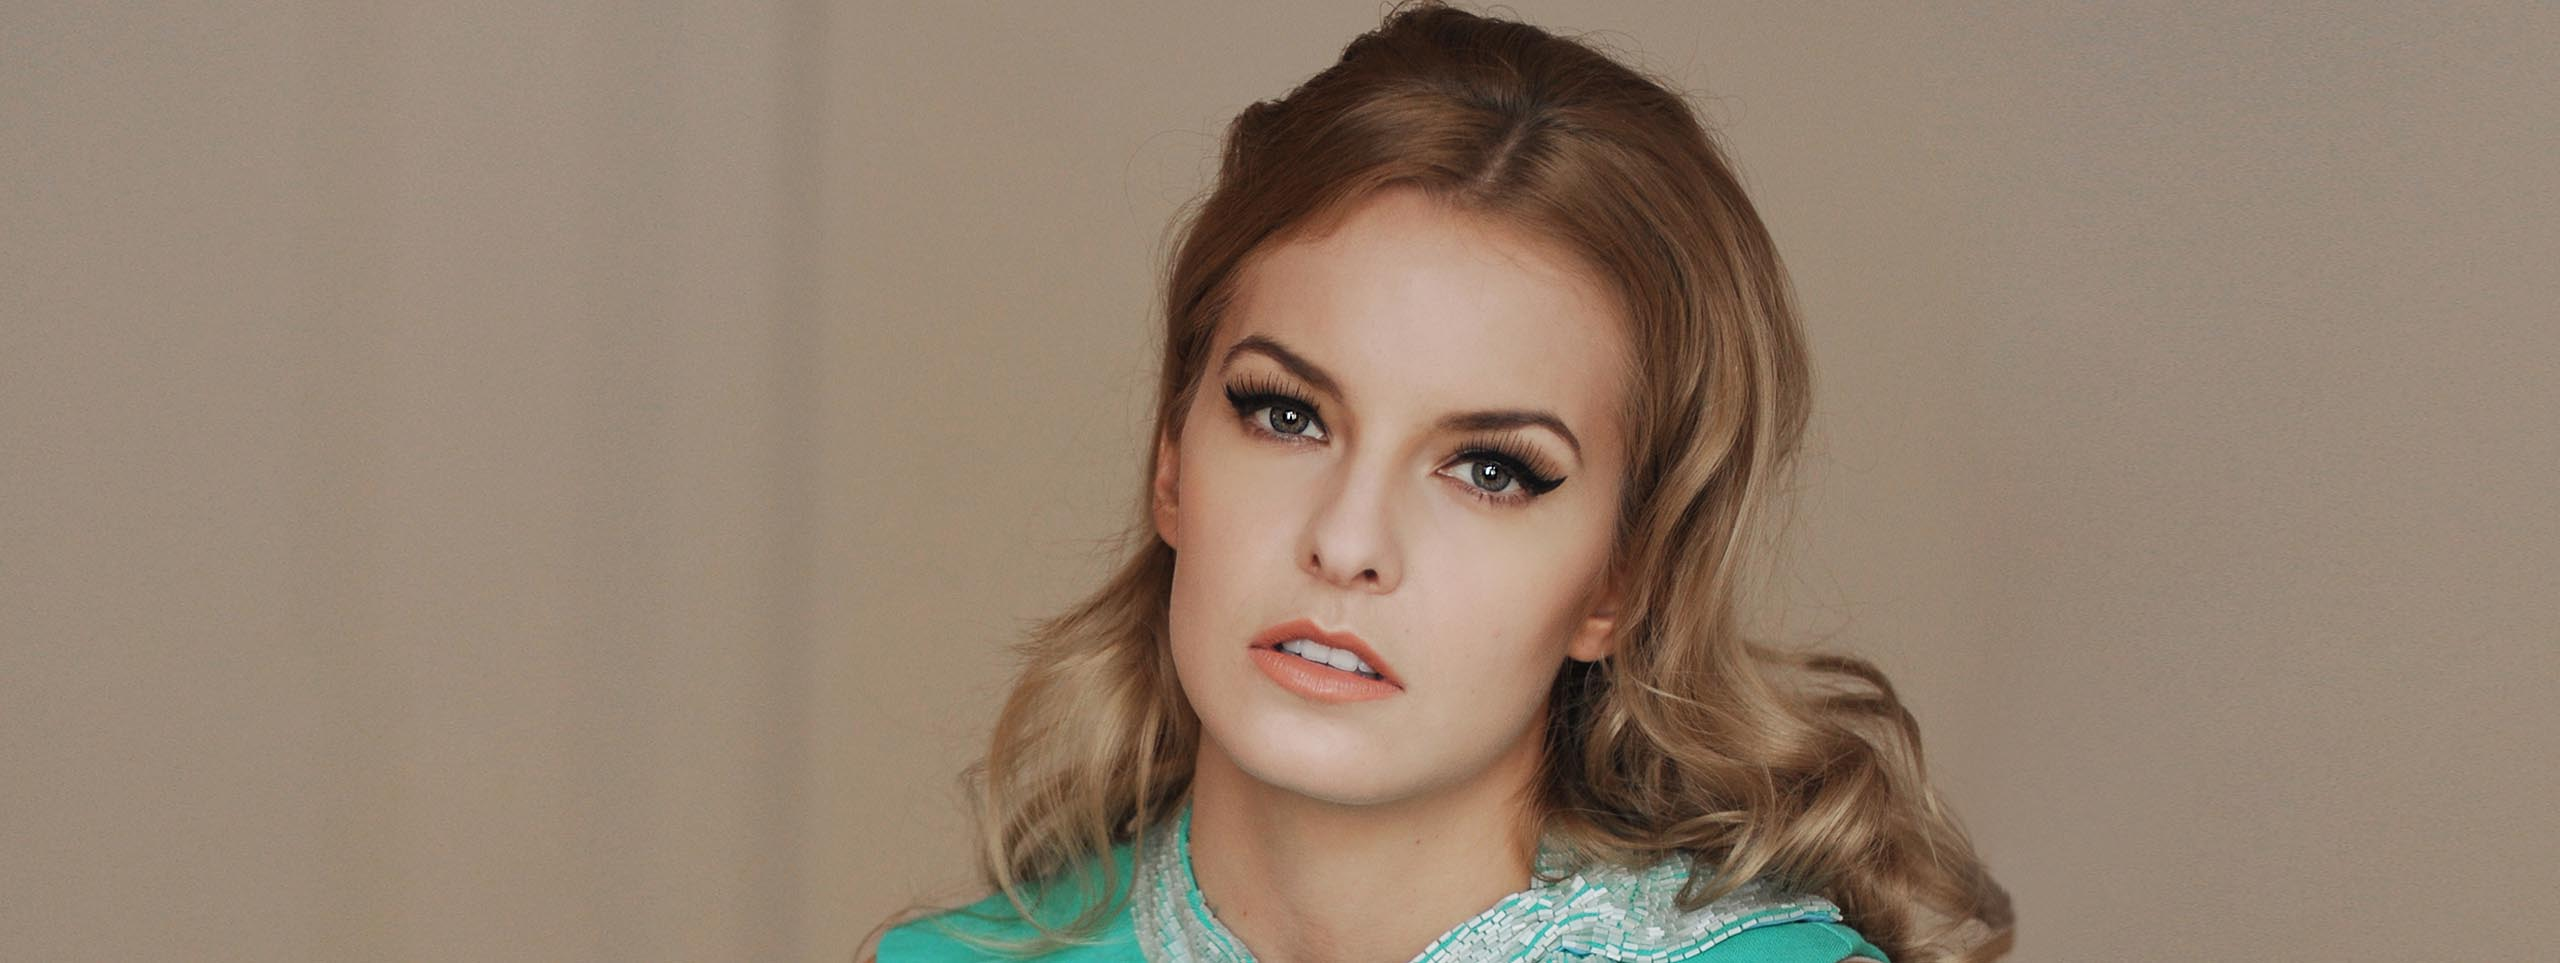 Woman with dark blond hair in half-up hairstyle, wearing a turquoise top and sixties style make-up.